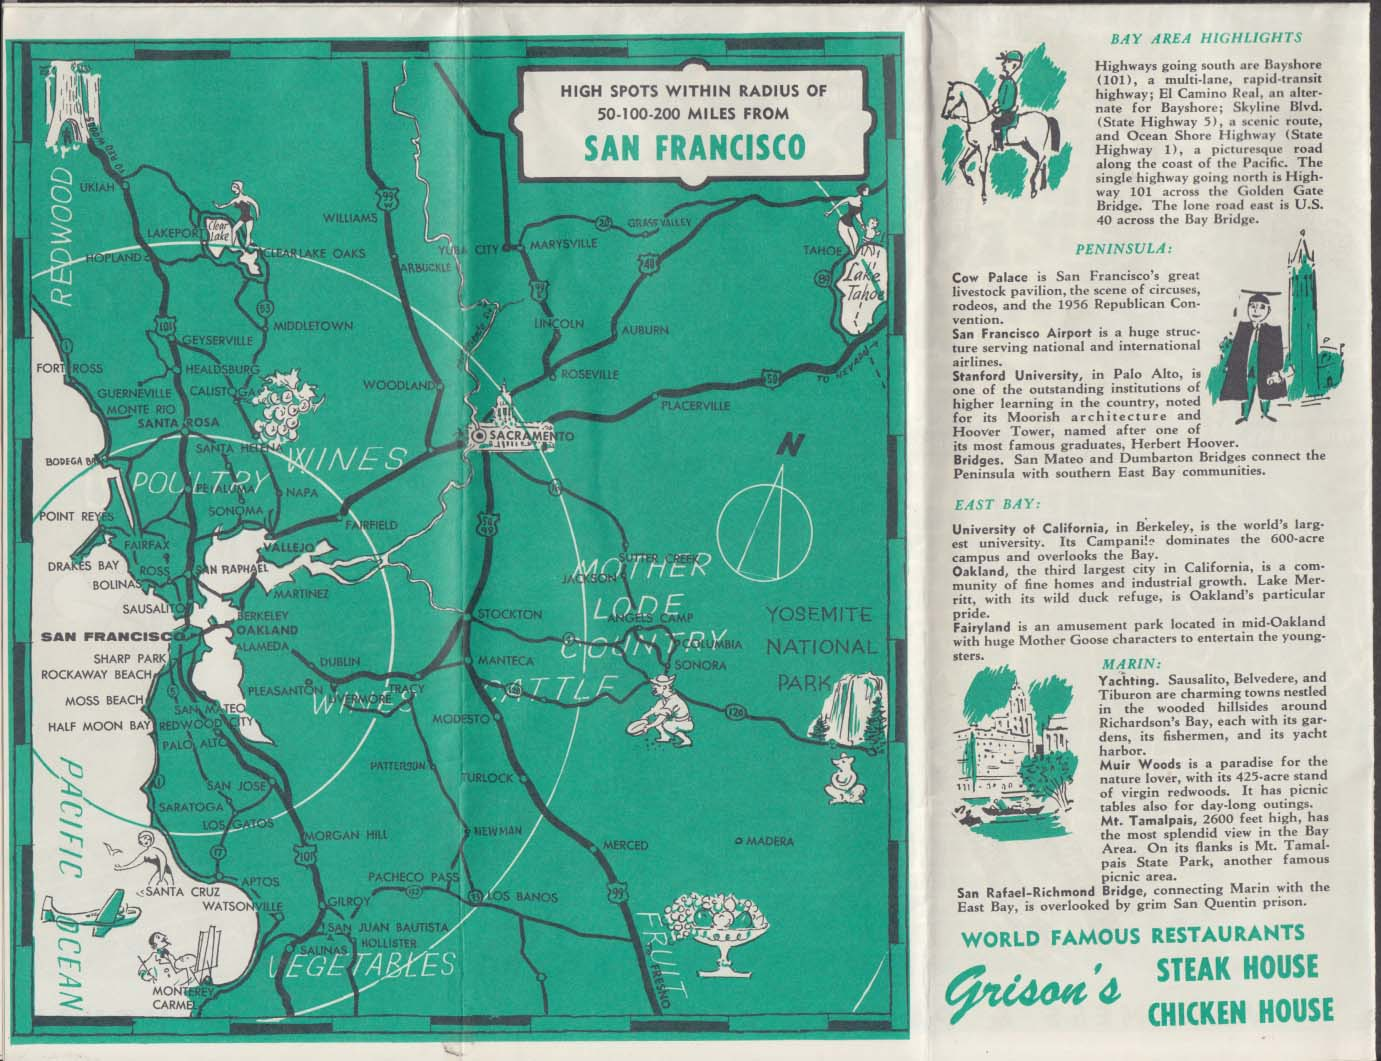 Grisons Restaurant Map Guide to San Francisco High Spots folder 1956